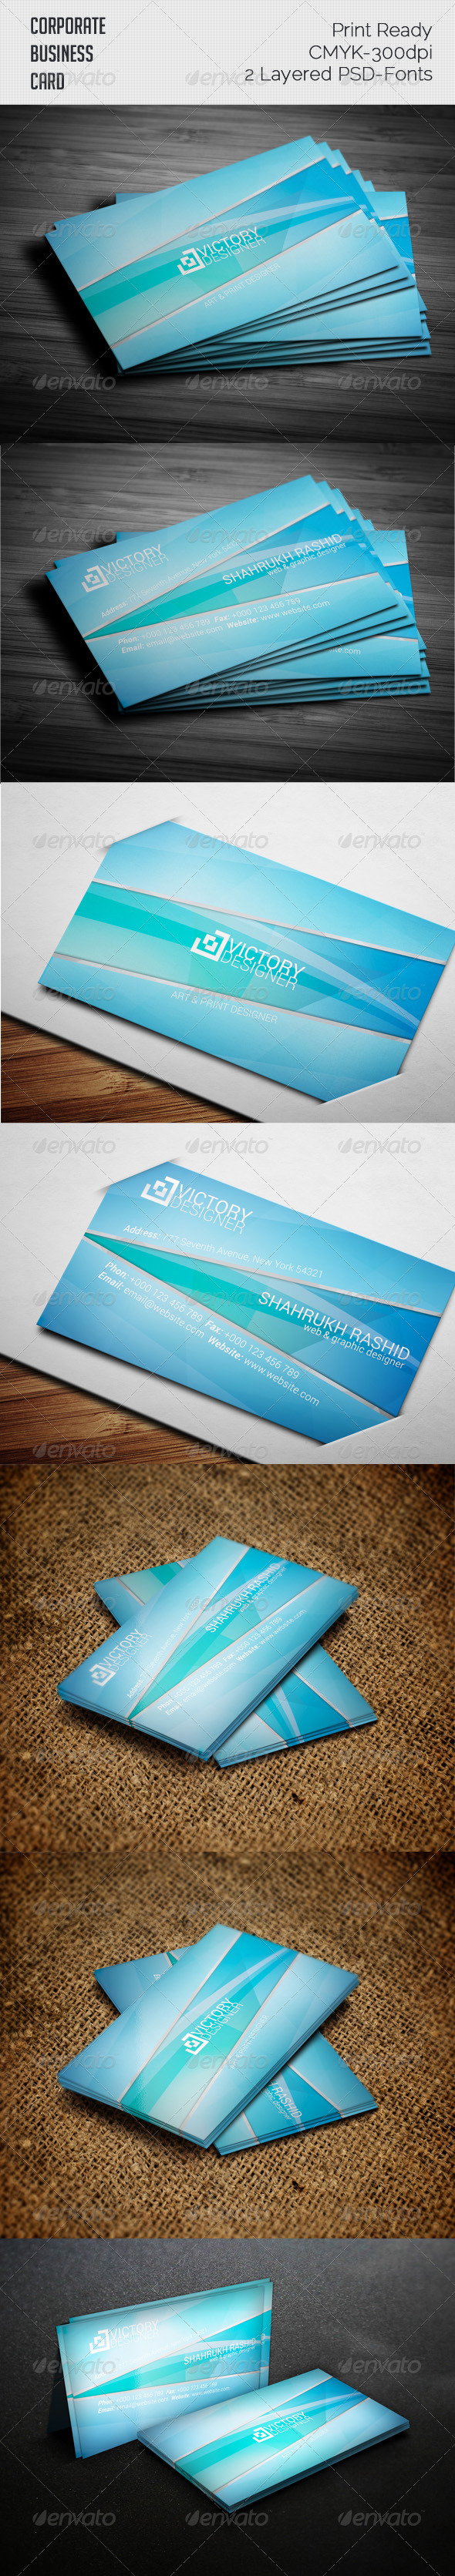 Clean Business Card - Real Objects Business Cards